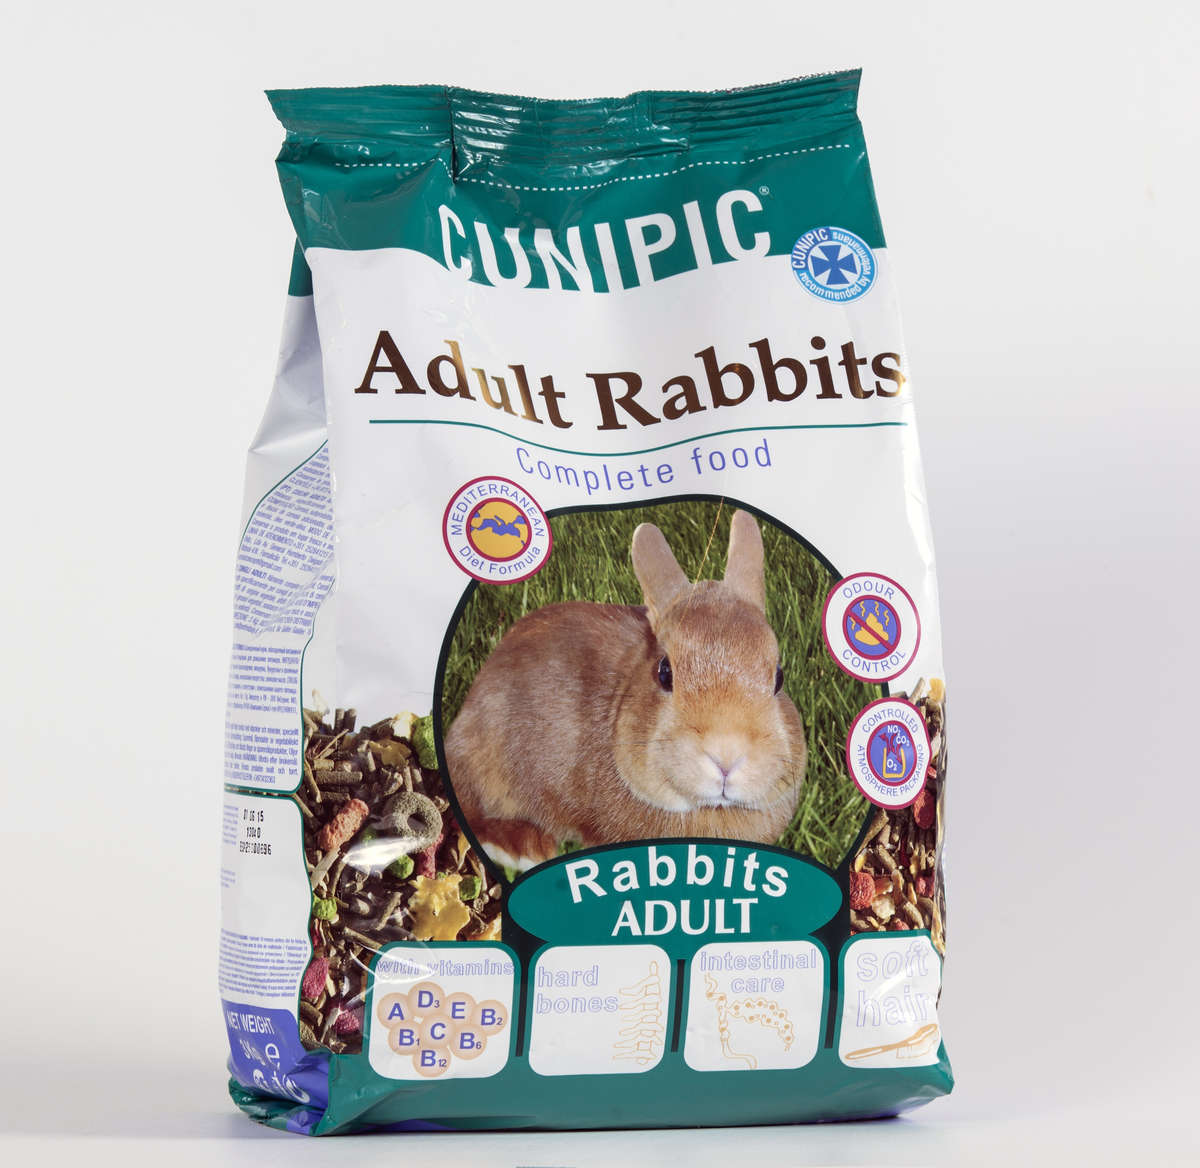 Cunipic Adult Rabbit